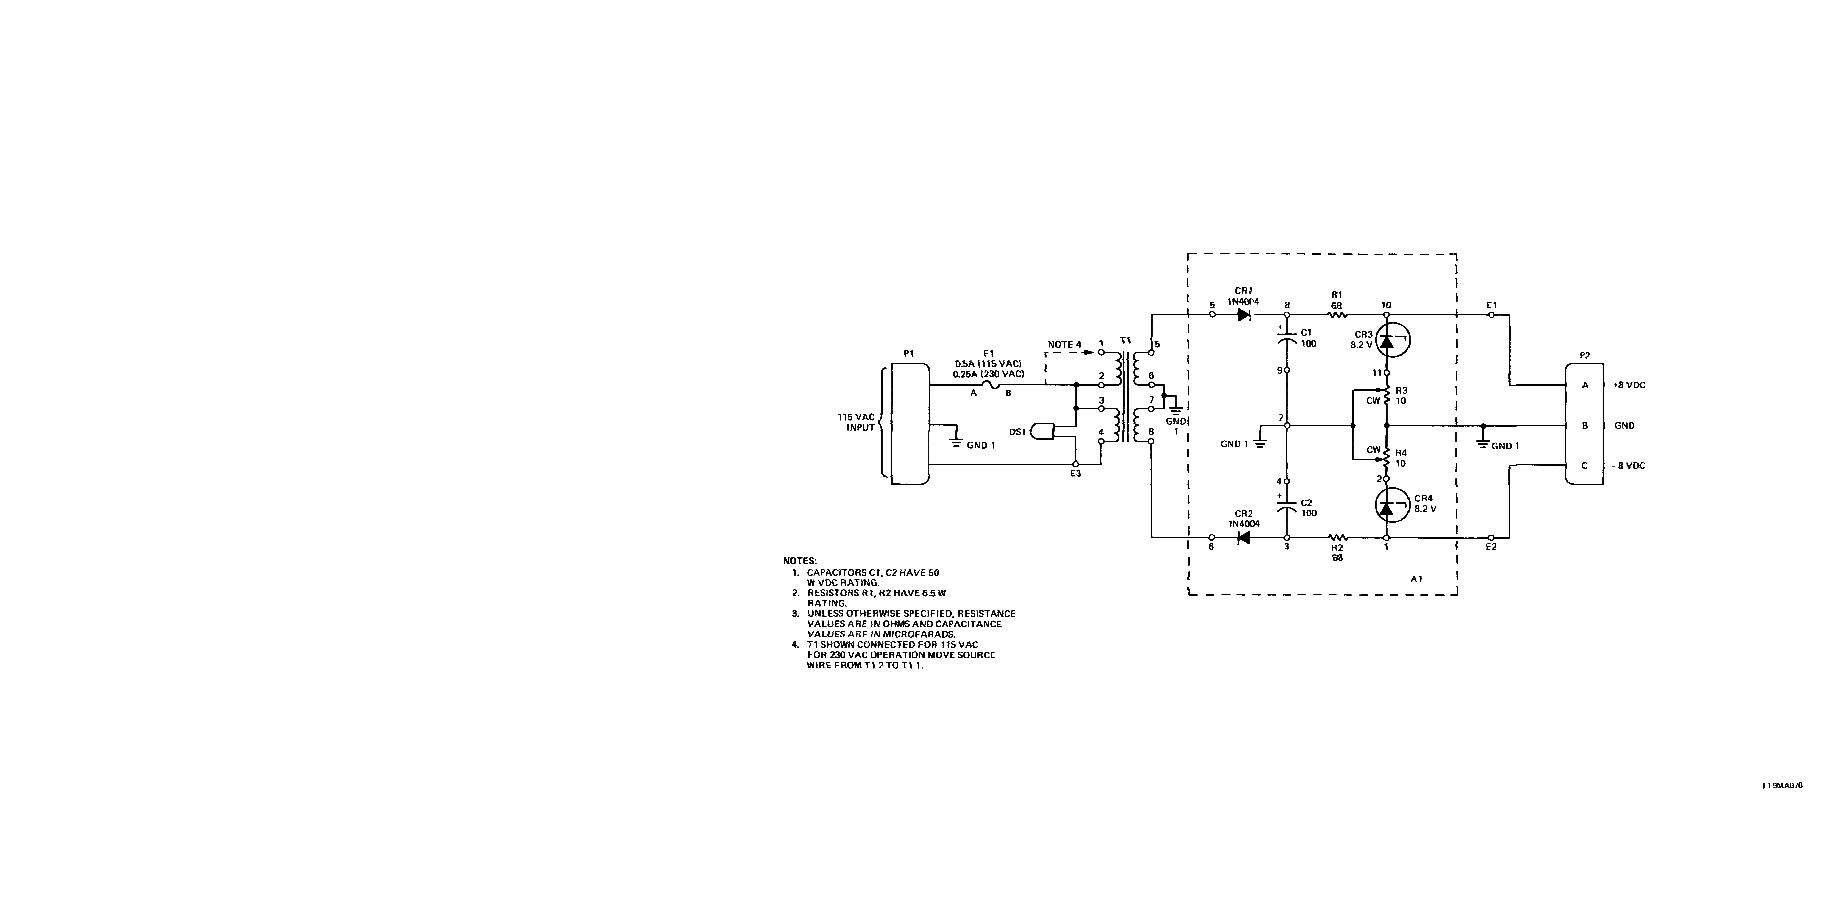 Battery Charger Schematic Diagram - schematic